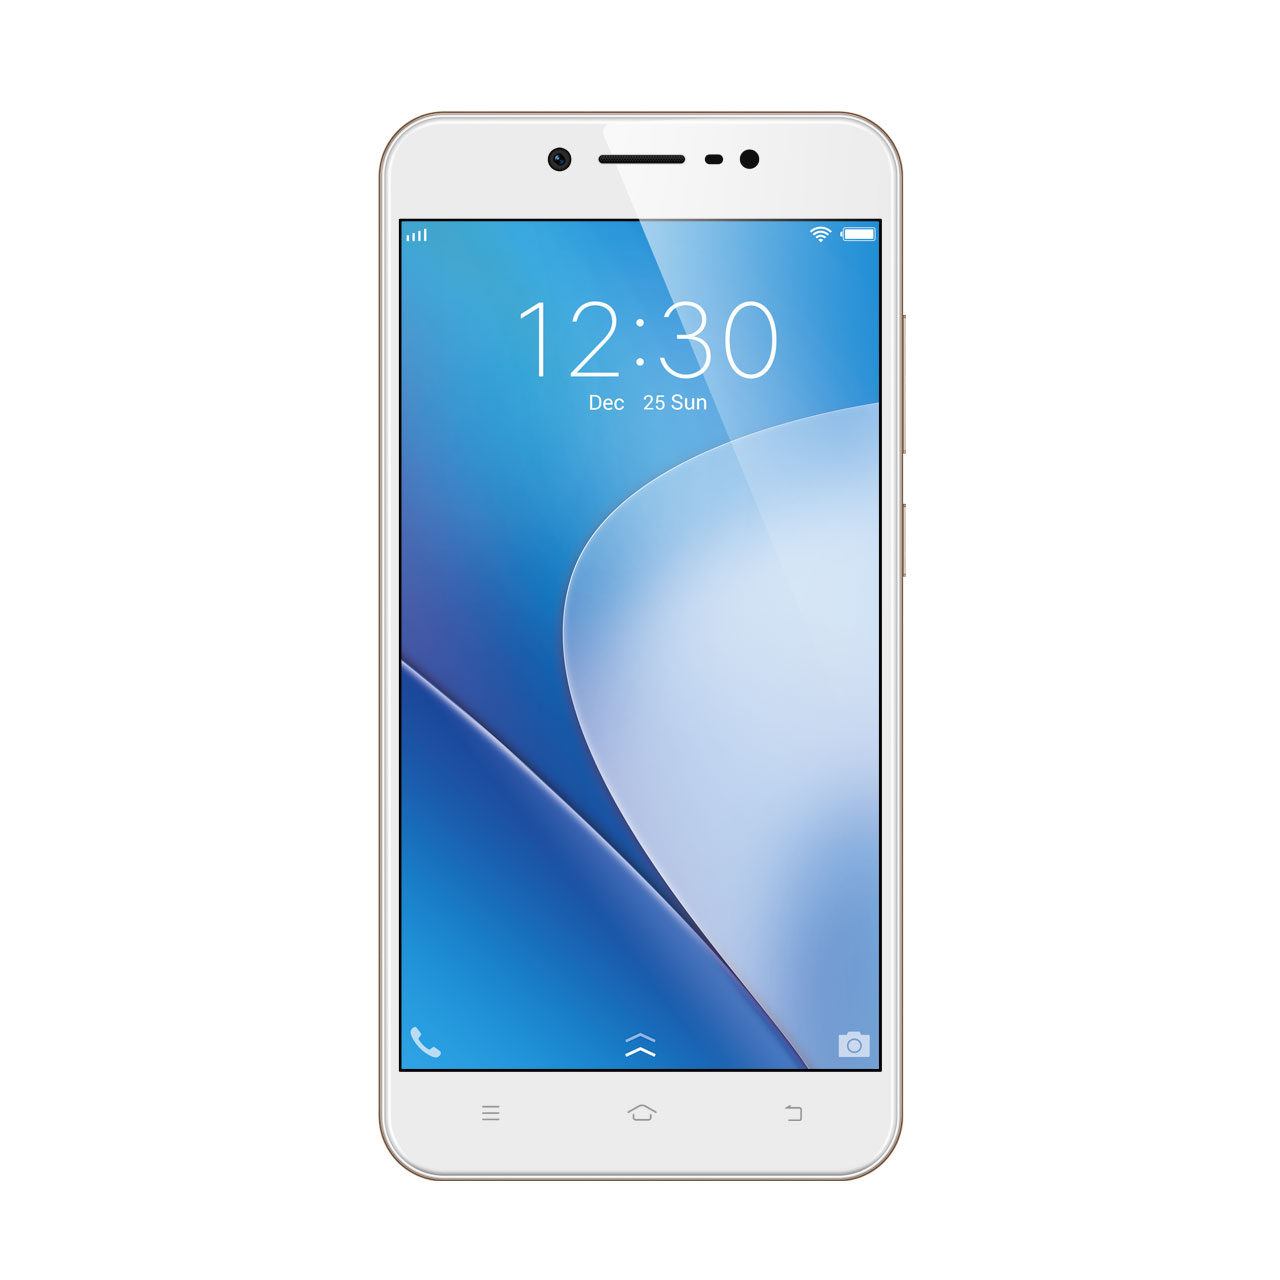 Vivo Y66 Photos Images And Wallpapers Mouthshutcom